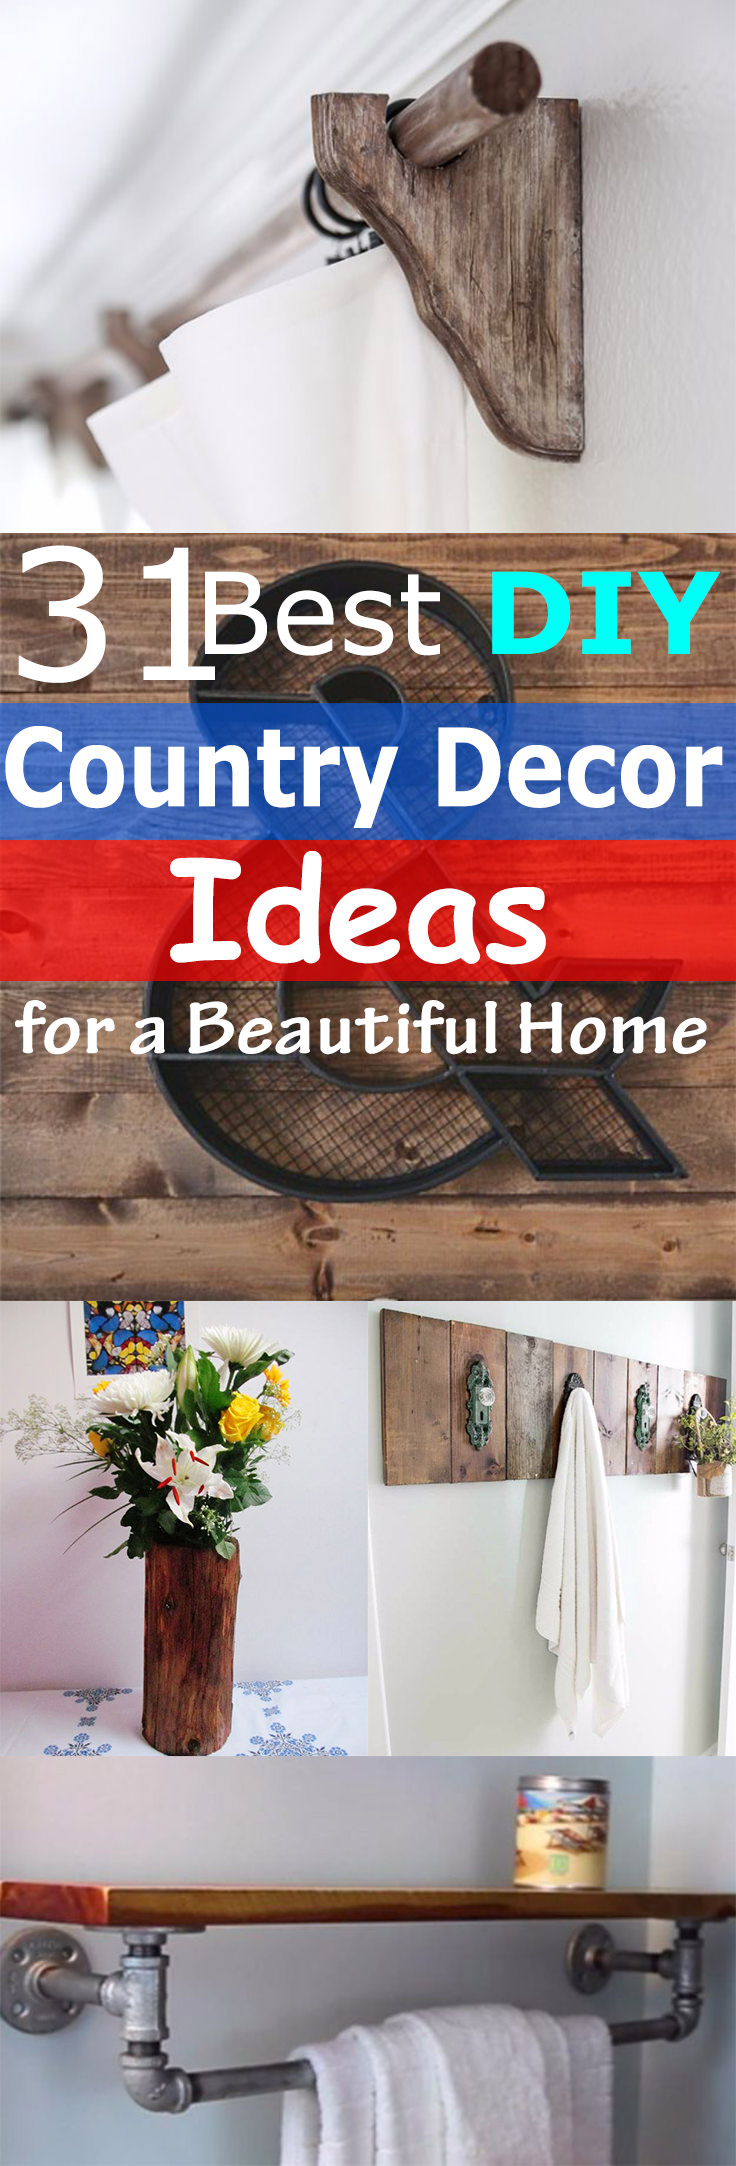 Even if you live in a city, you can recreate a charm of beautiful and rustic country home with these 31 Best DIY Country Decor Ideas here!